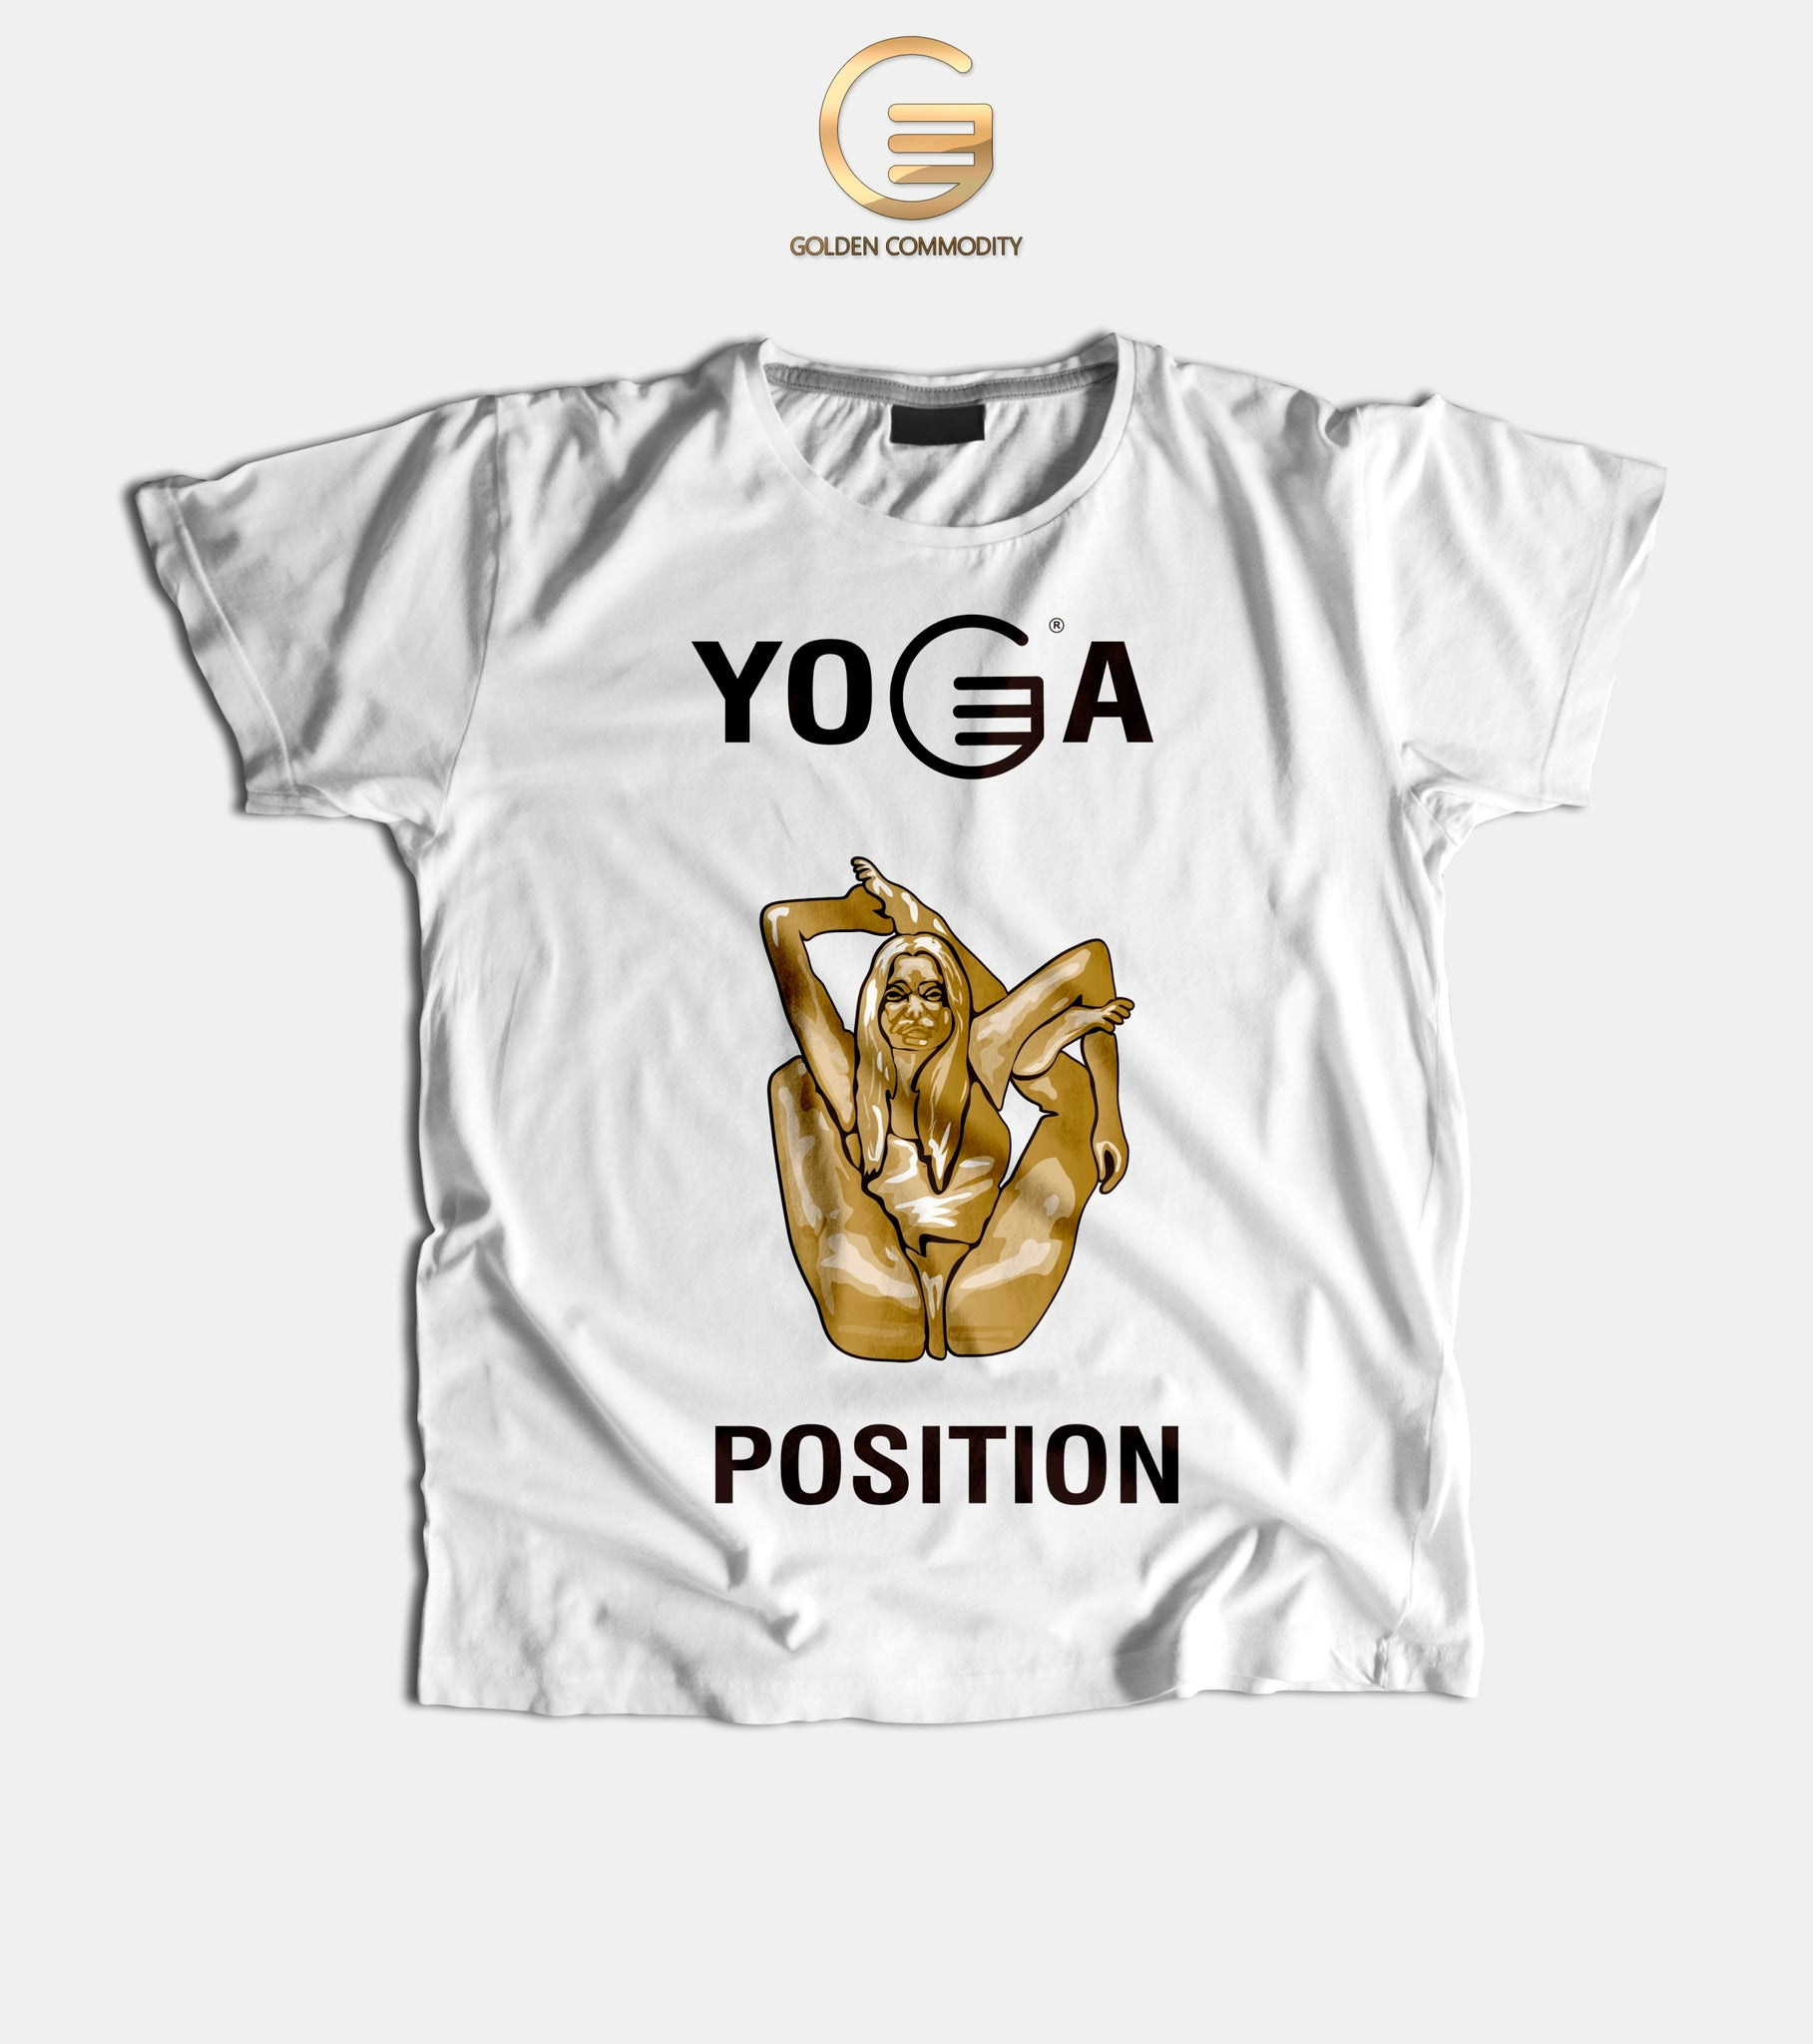 Yoga Position Men's T-Shirts